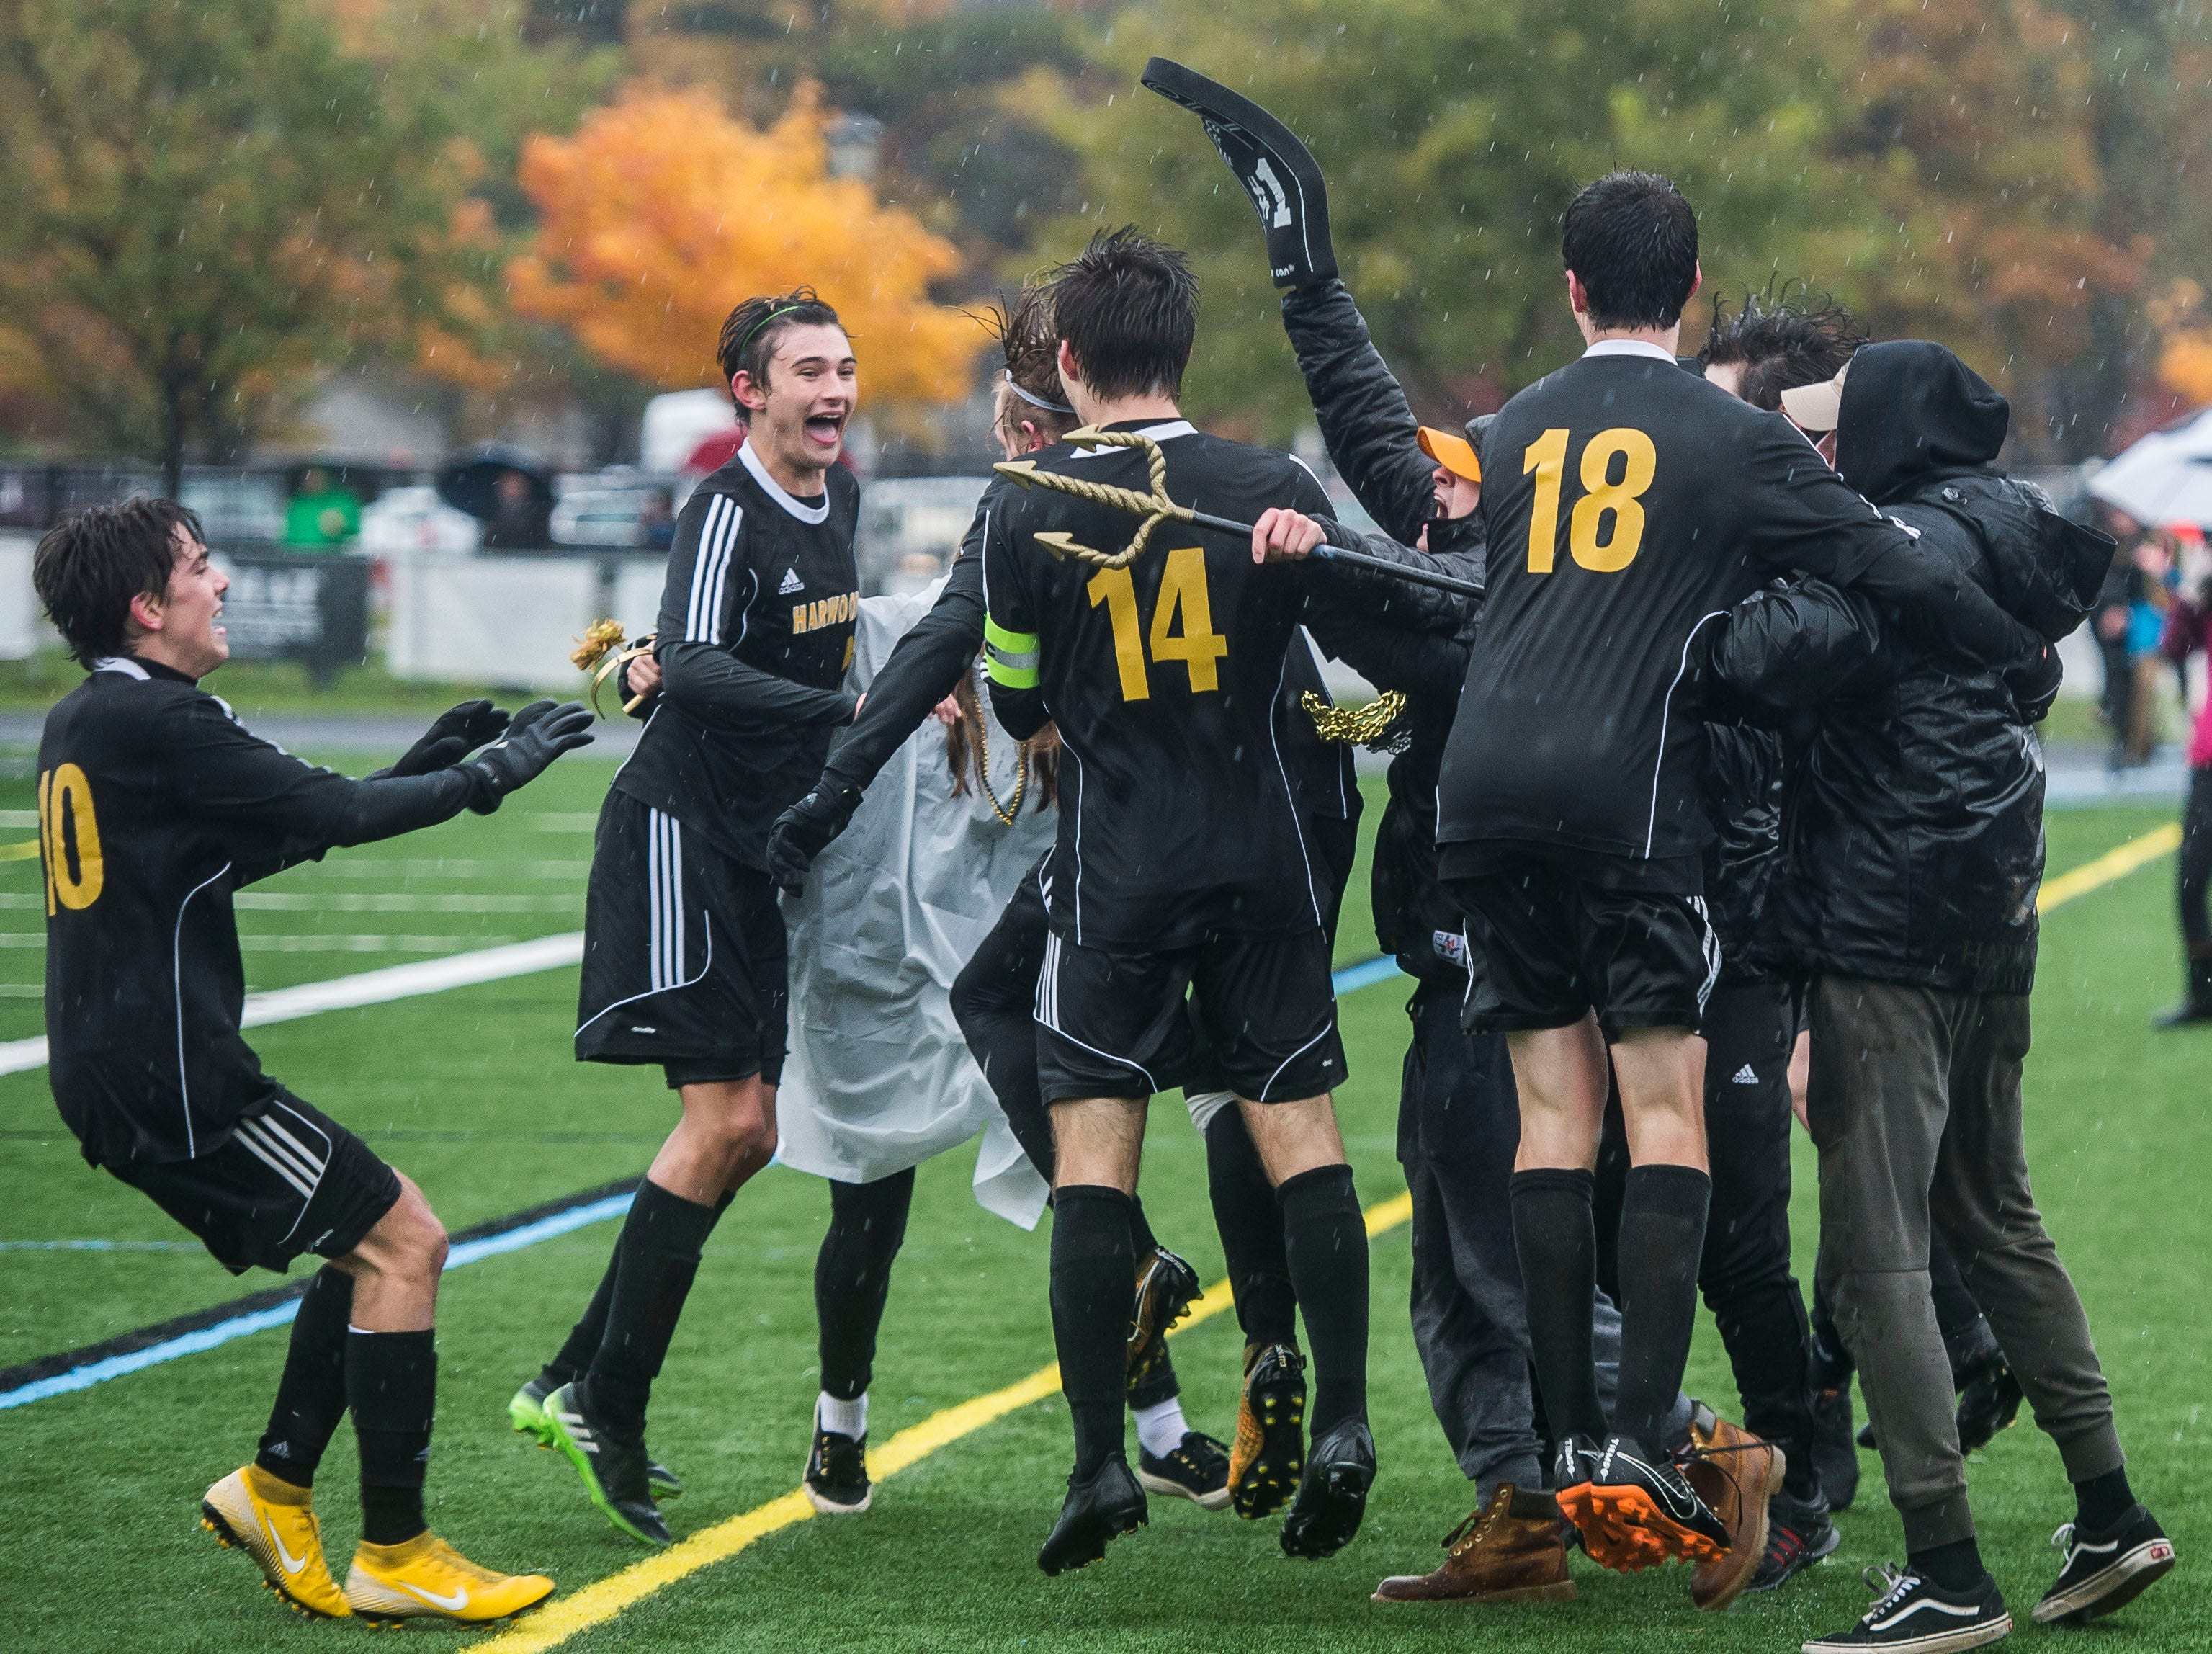 Harwood Union boy's soccer team celebrates after winning the Div. 2 Vermont State high school boy's soccer championship game at South Burlington High School on Saturday, Nov. 3, 2018, beating Woodstock 3-0.